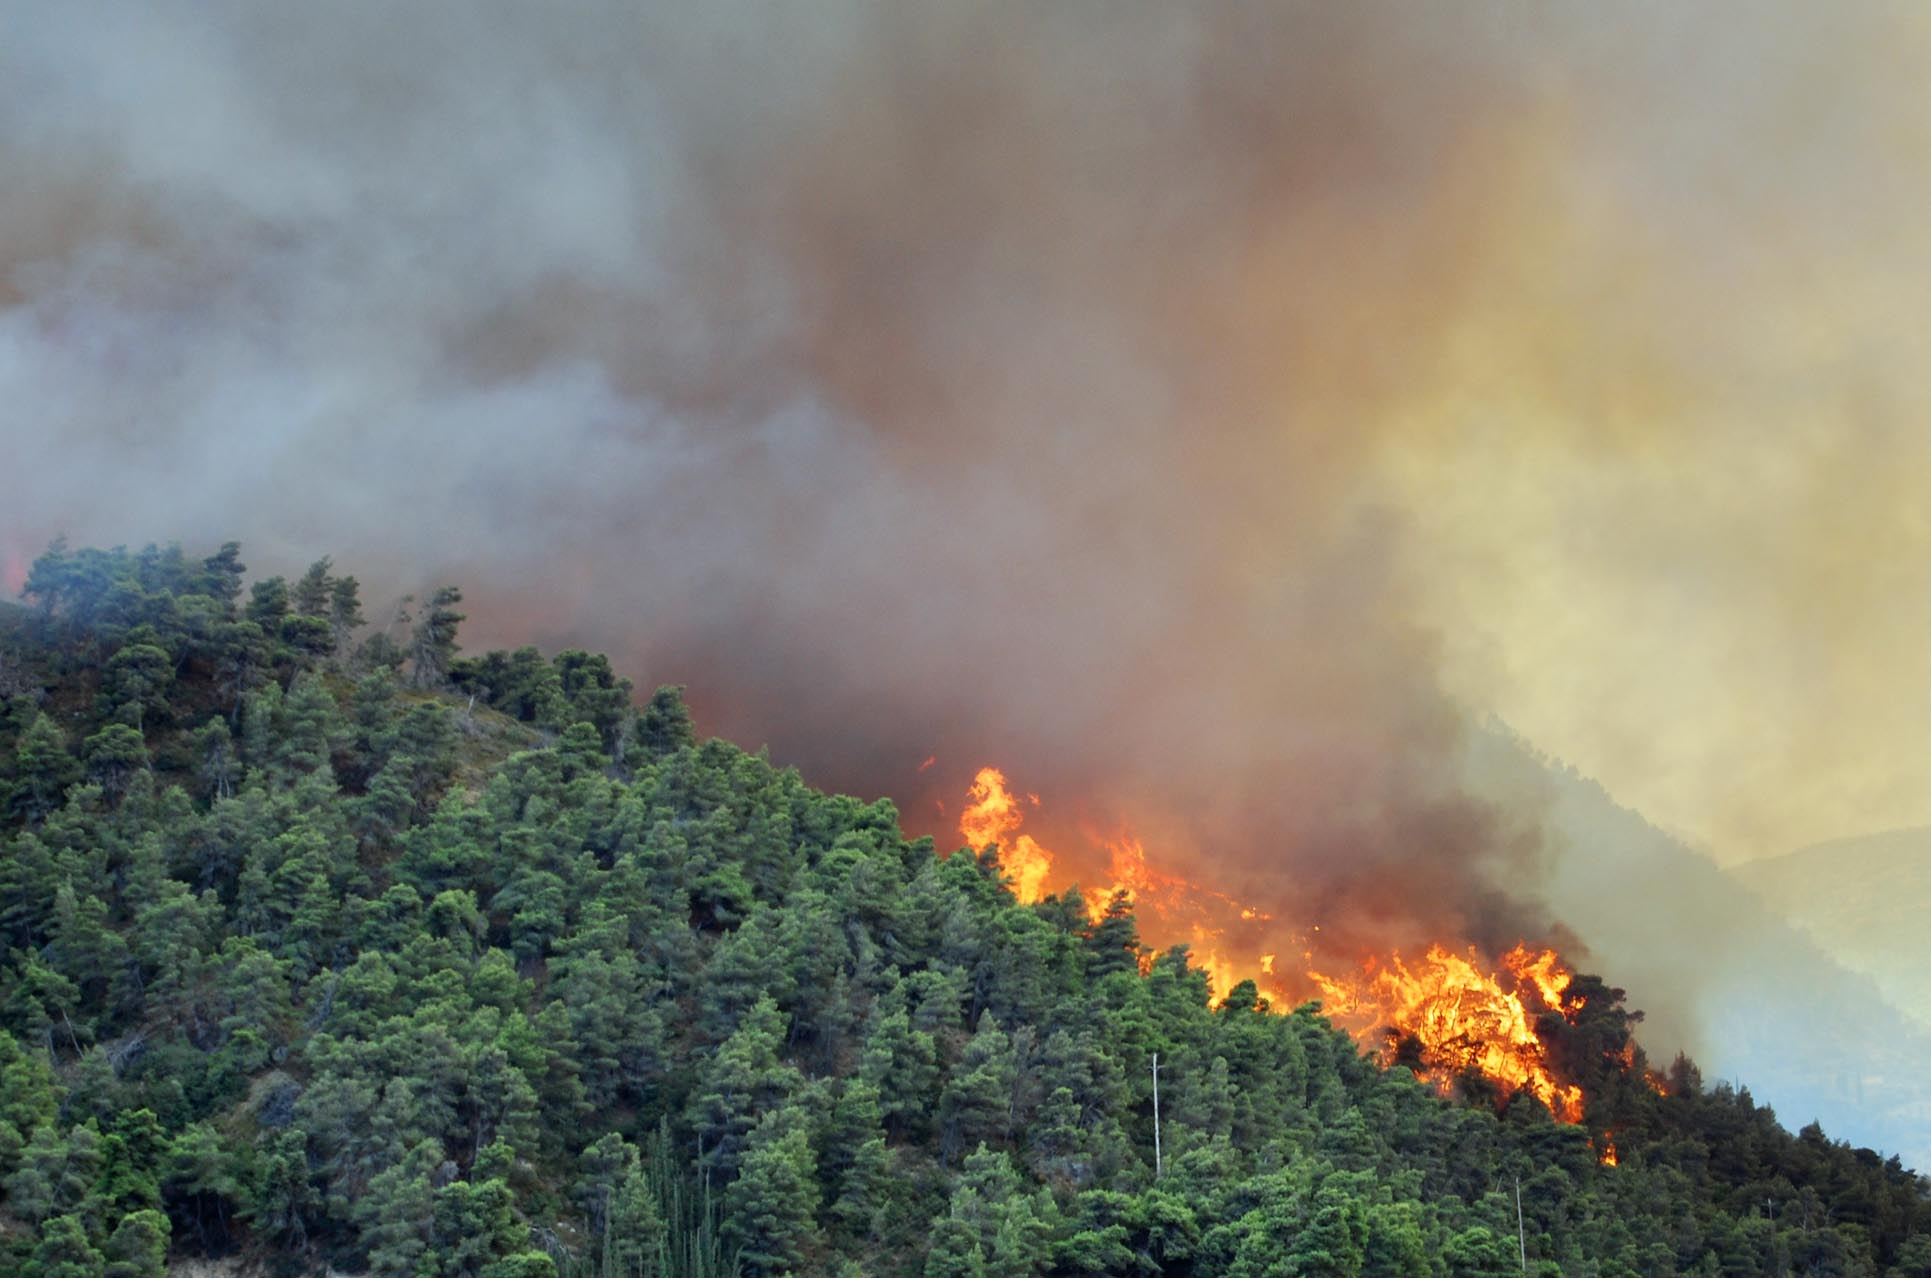 Who causes Forest Fire - Nature or Human Beings? - Follow ...